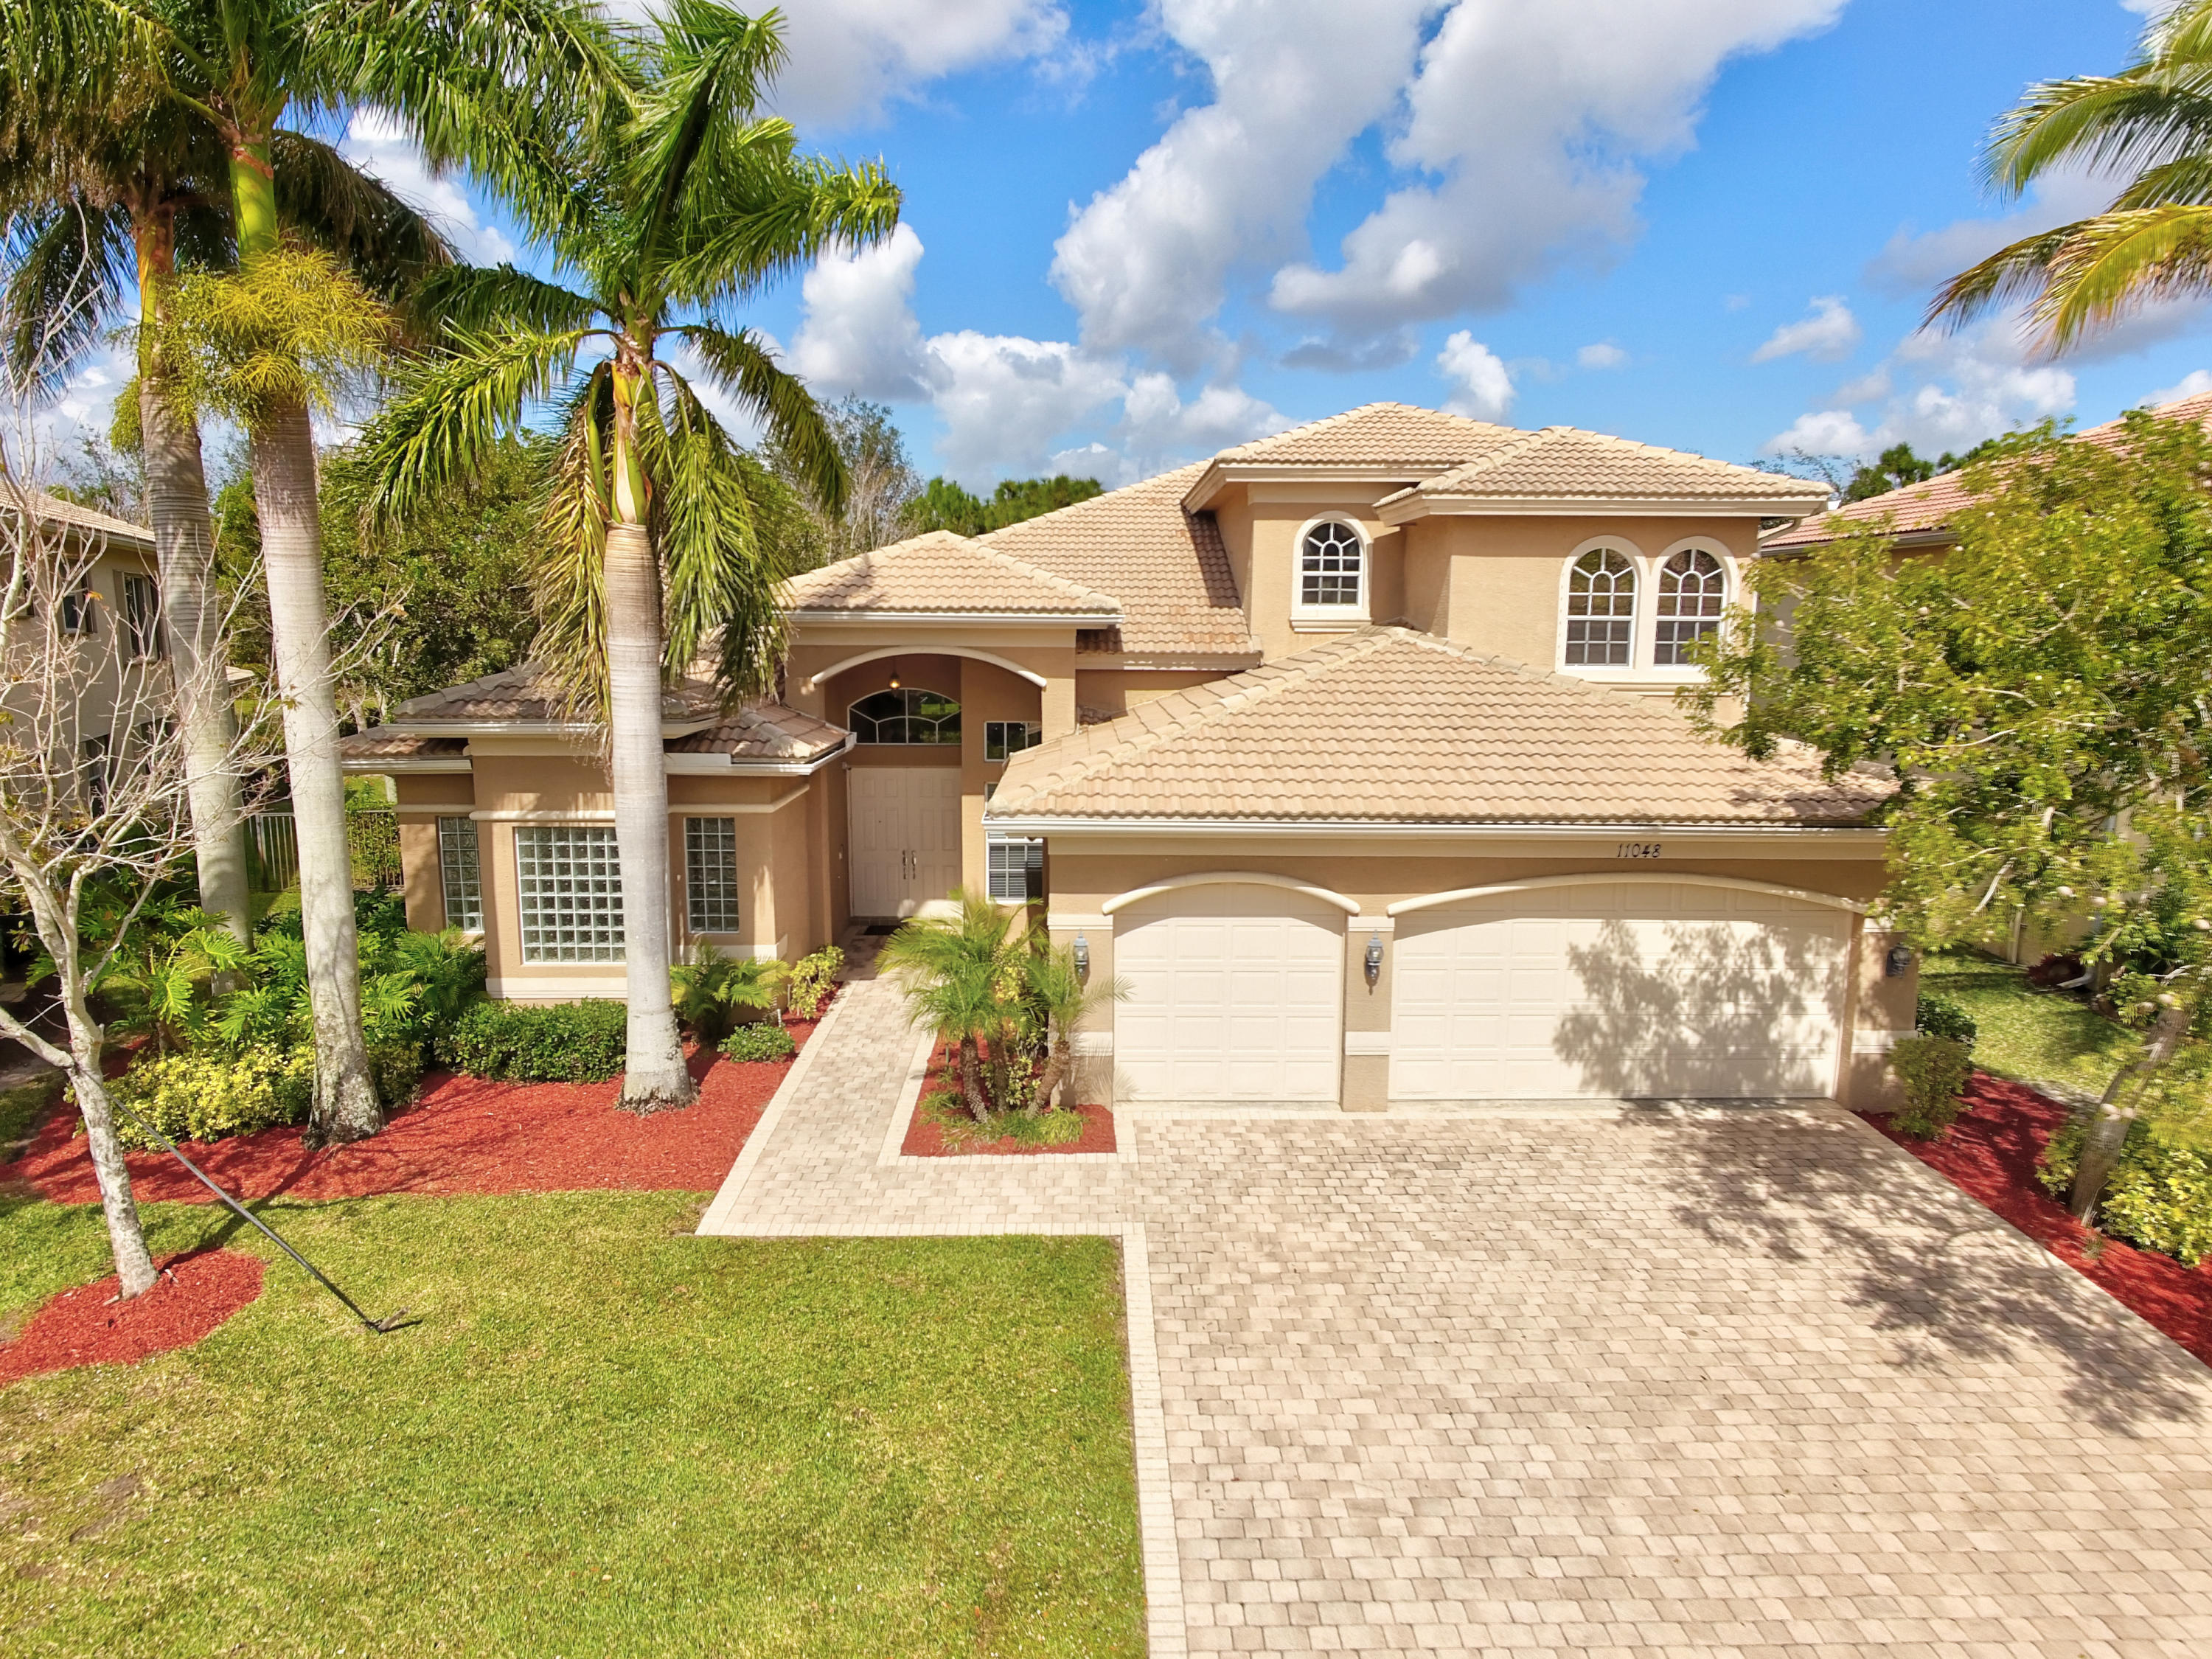 11048 Brandywine Lake Way Boynton Beach, FL 33473